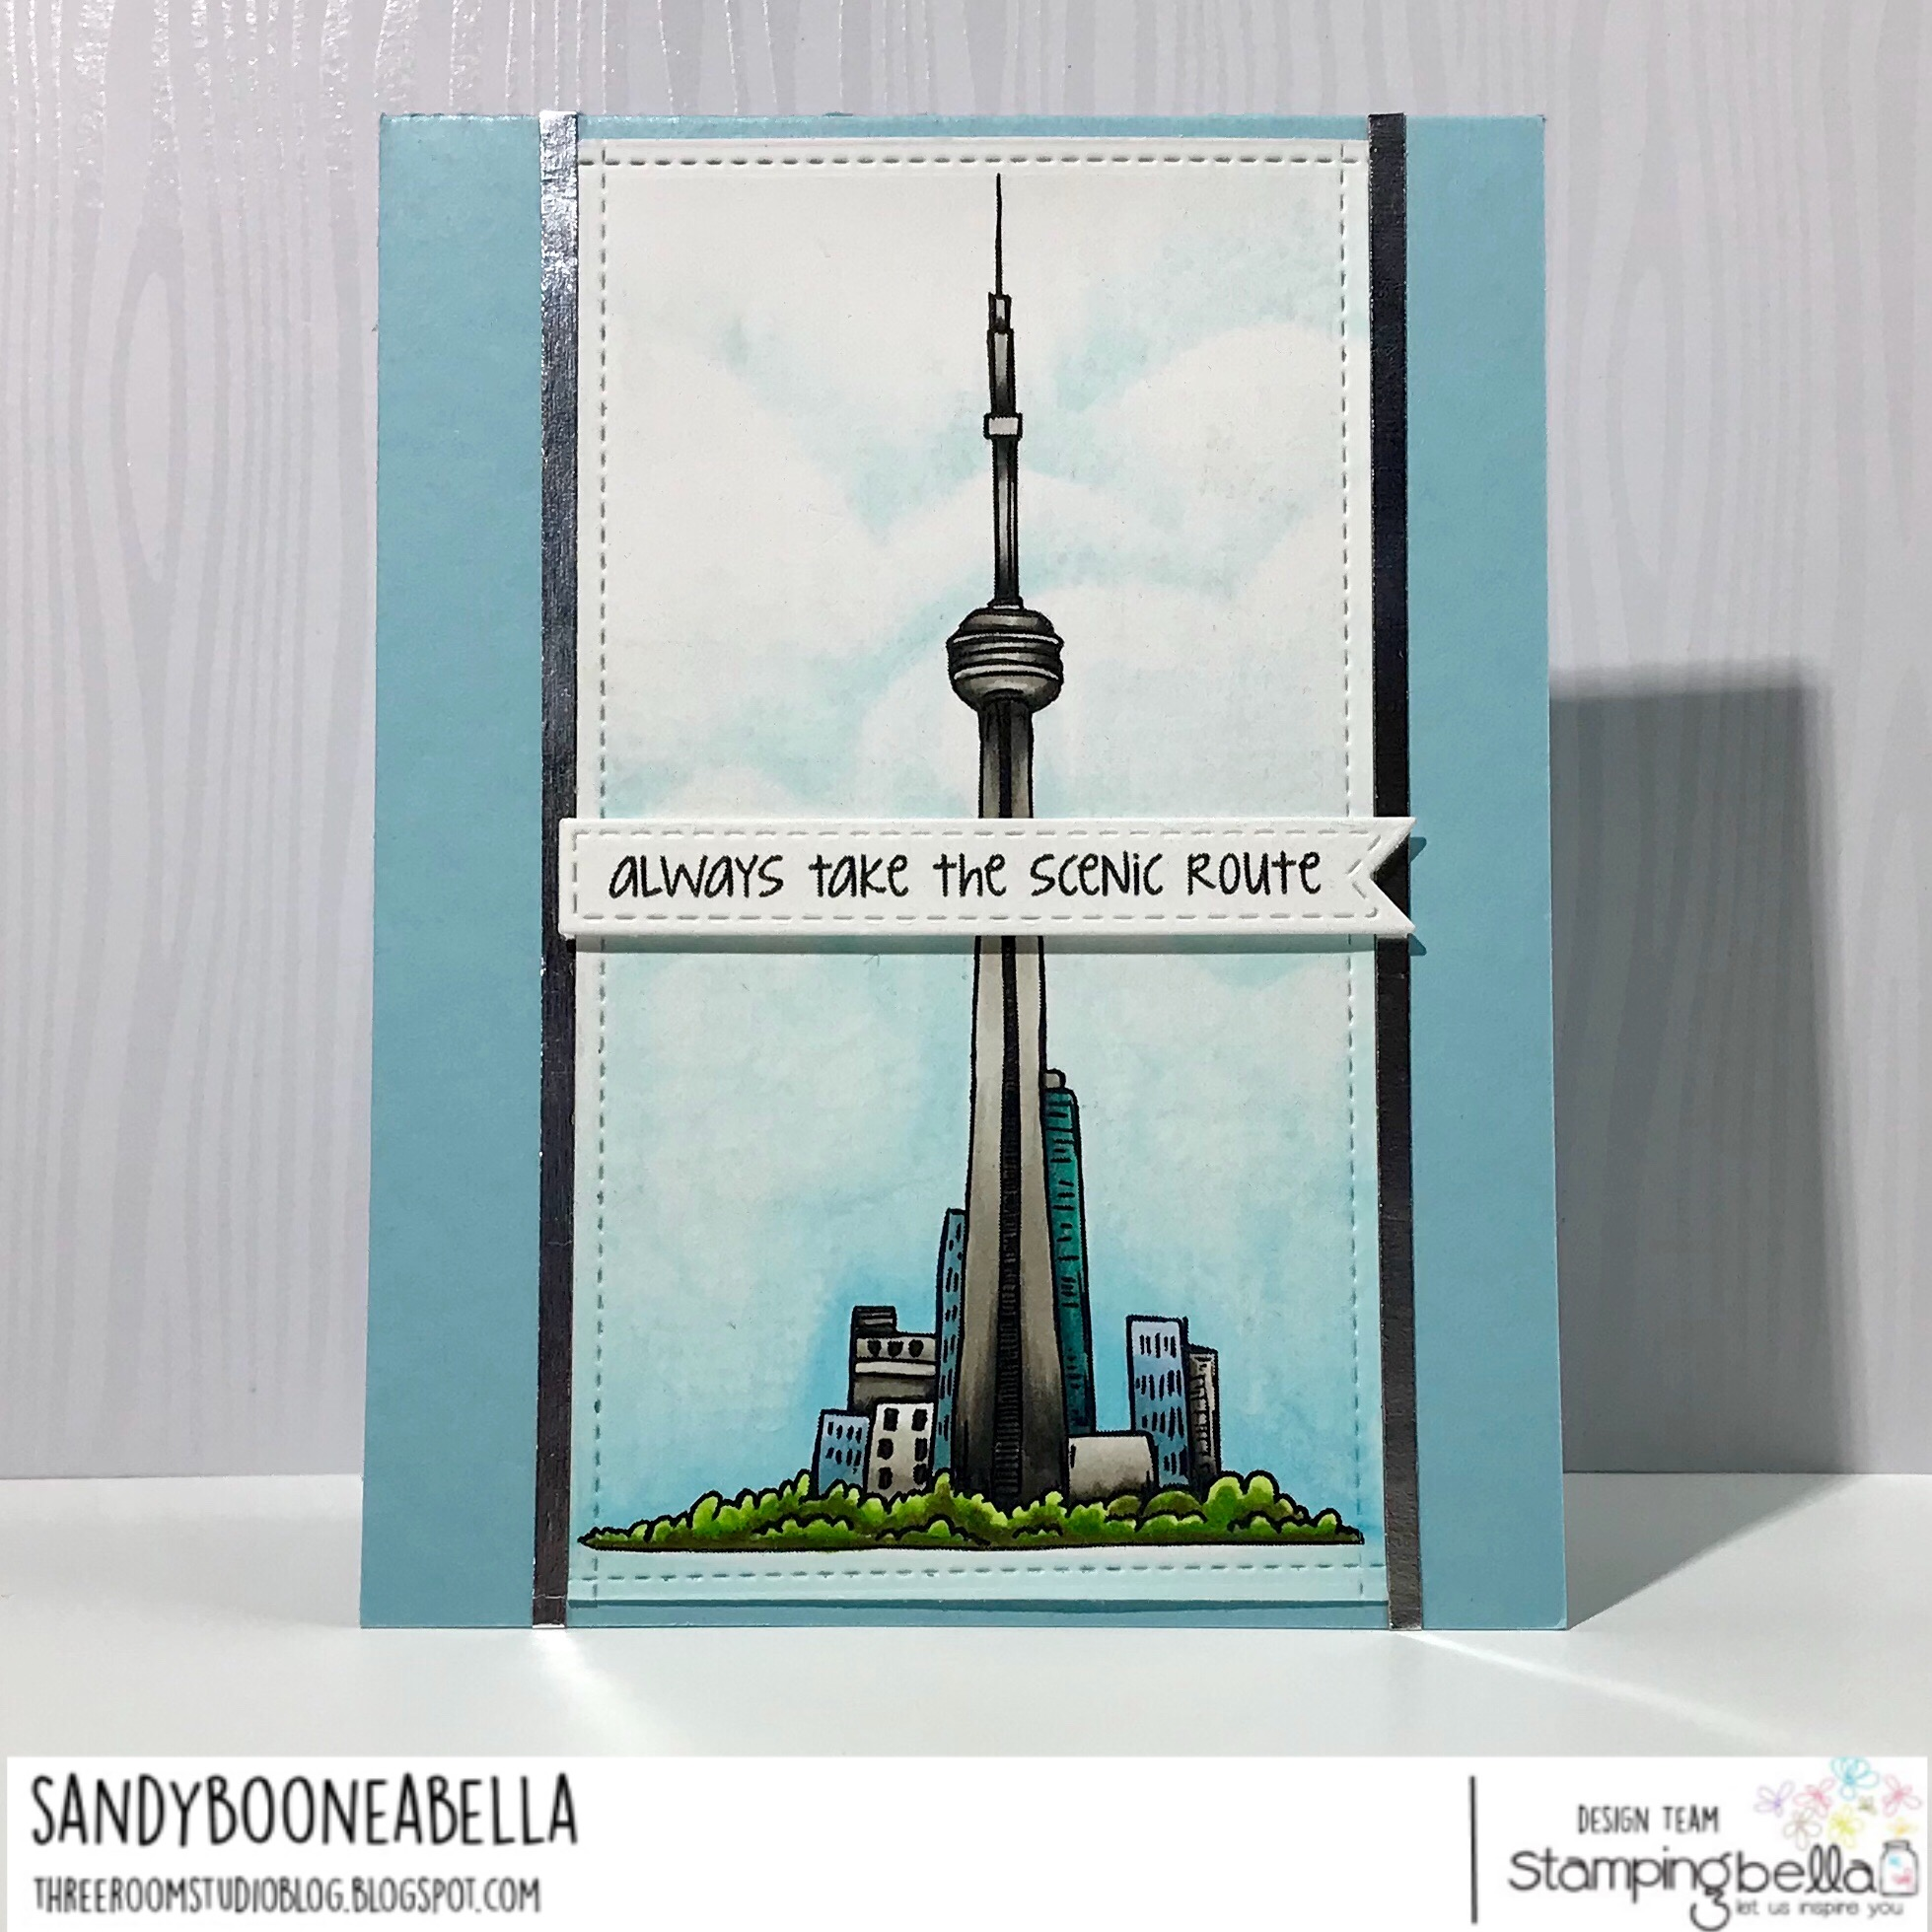 www.stampingbella.com: Rubber stamp used: Rosie and Bernie's CN TOWER and ADVENTURE SENTIMENT SET , card made by Sandy Boone